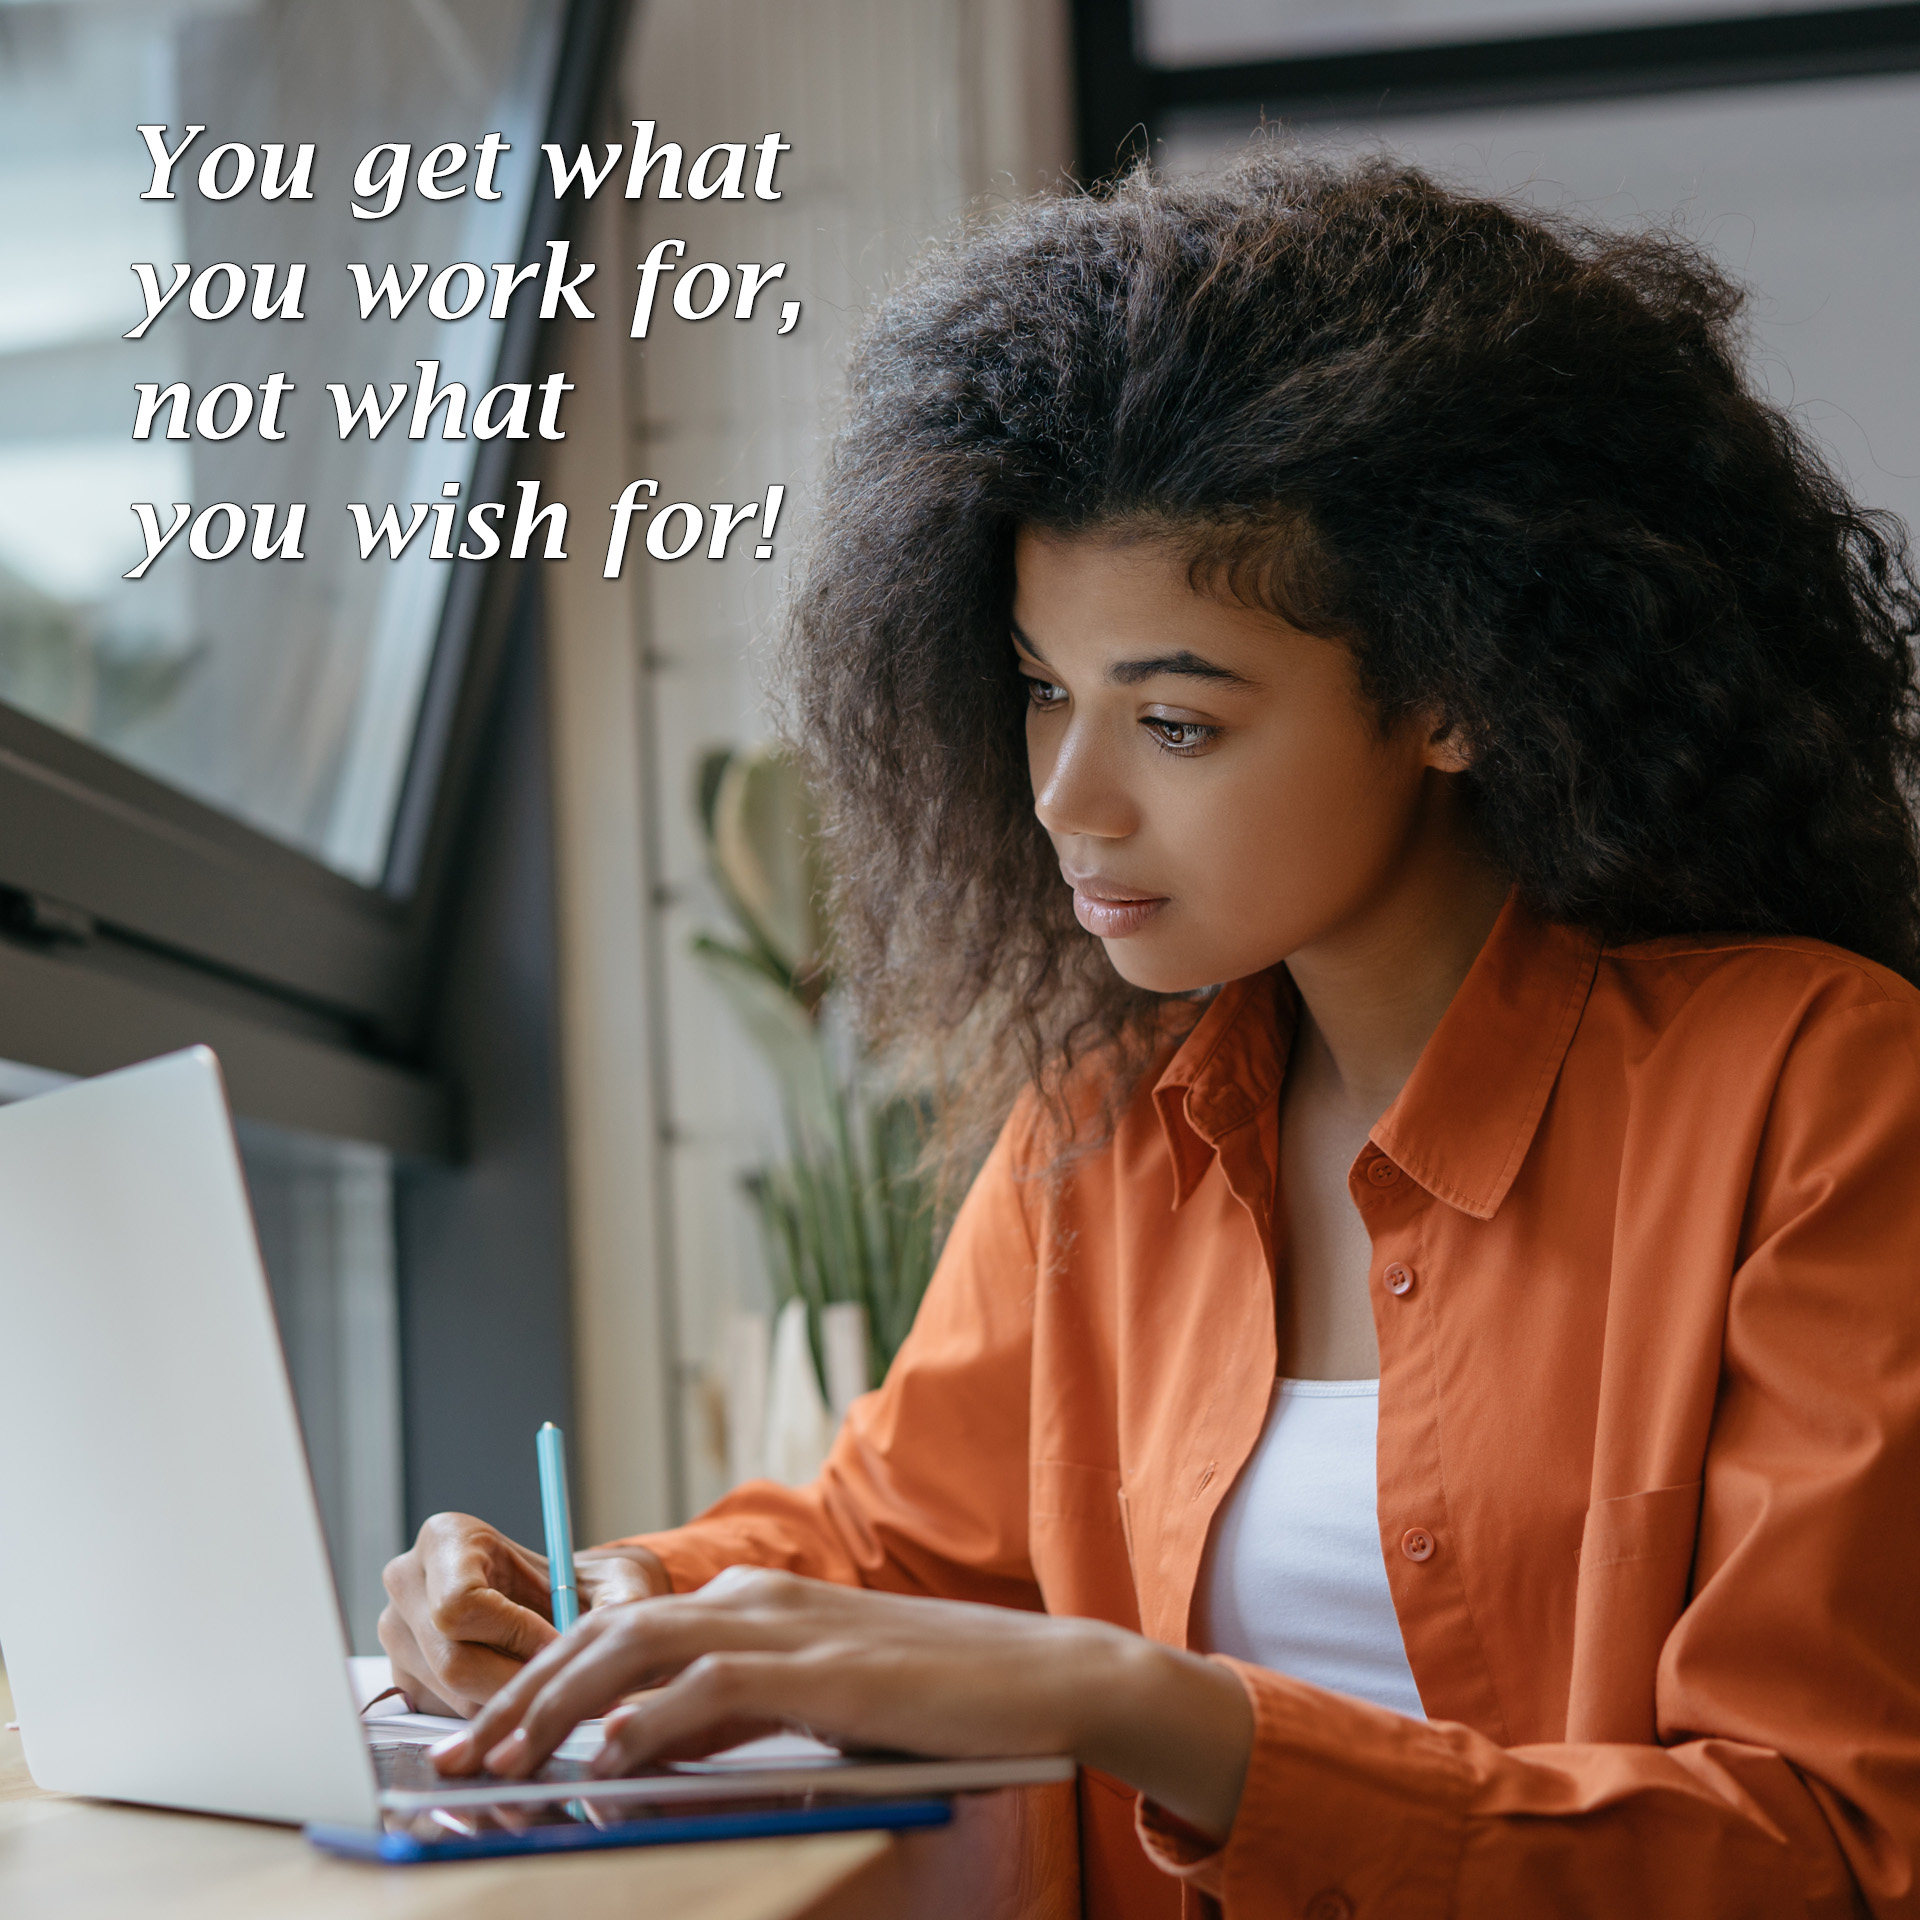 You get what you work for, not what you wish for